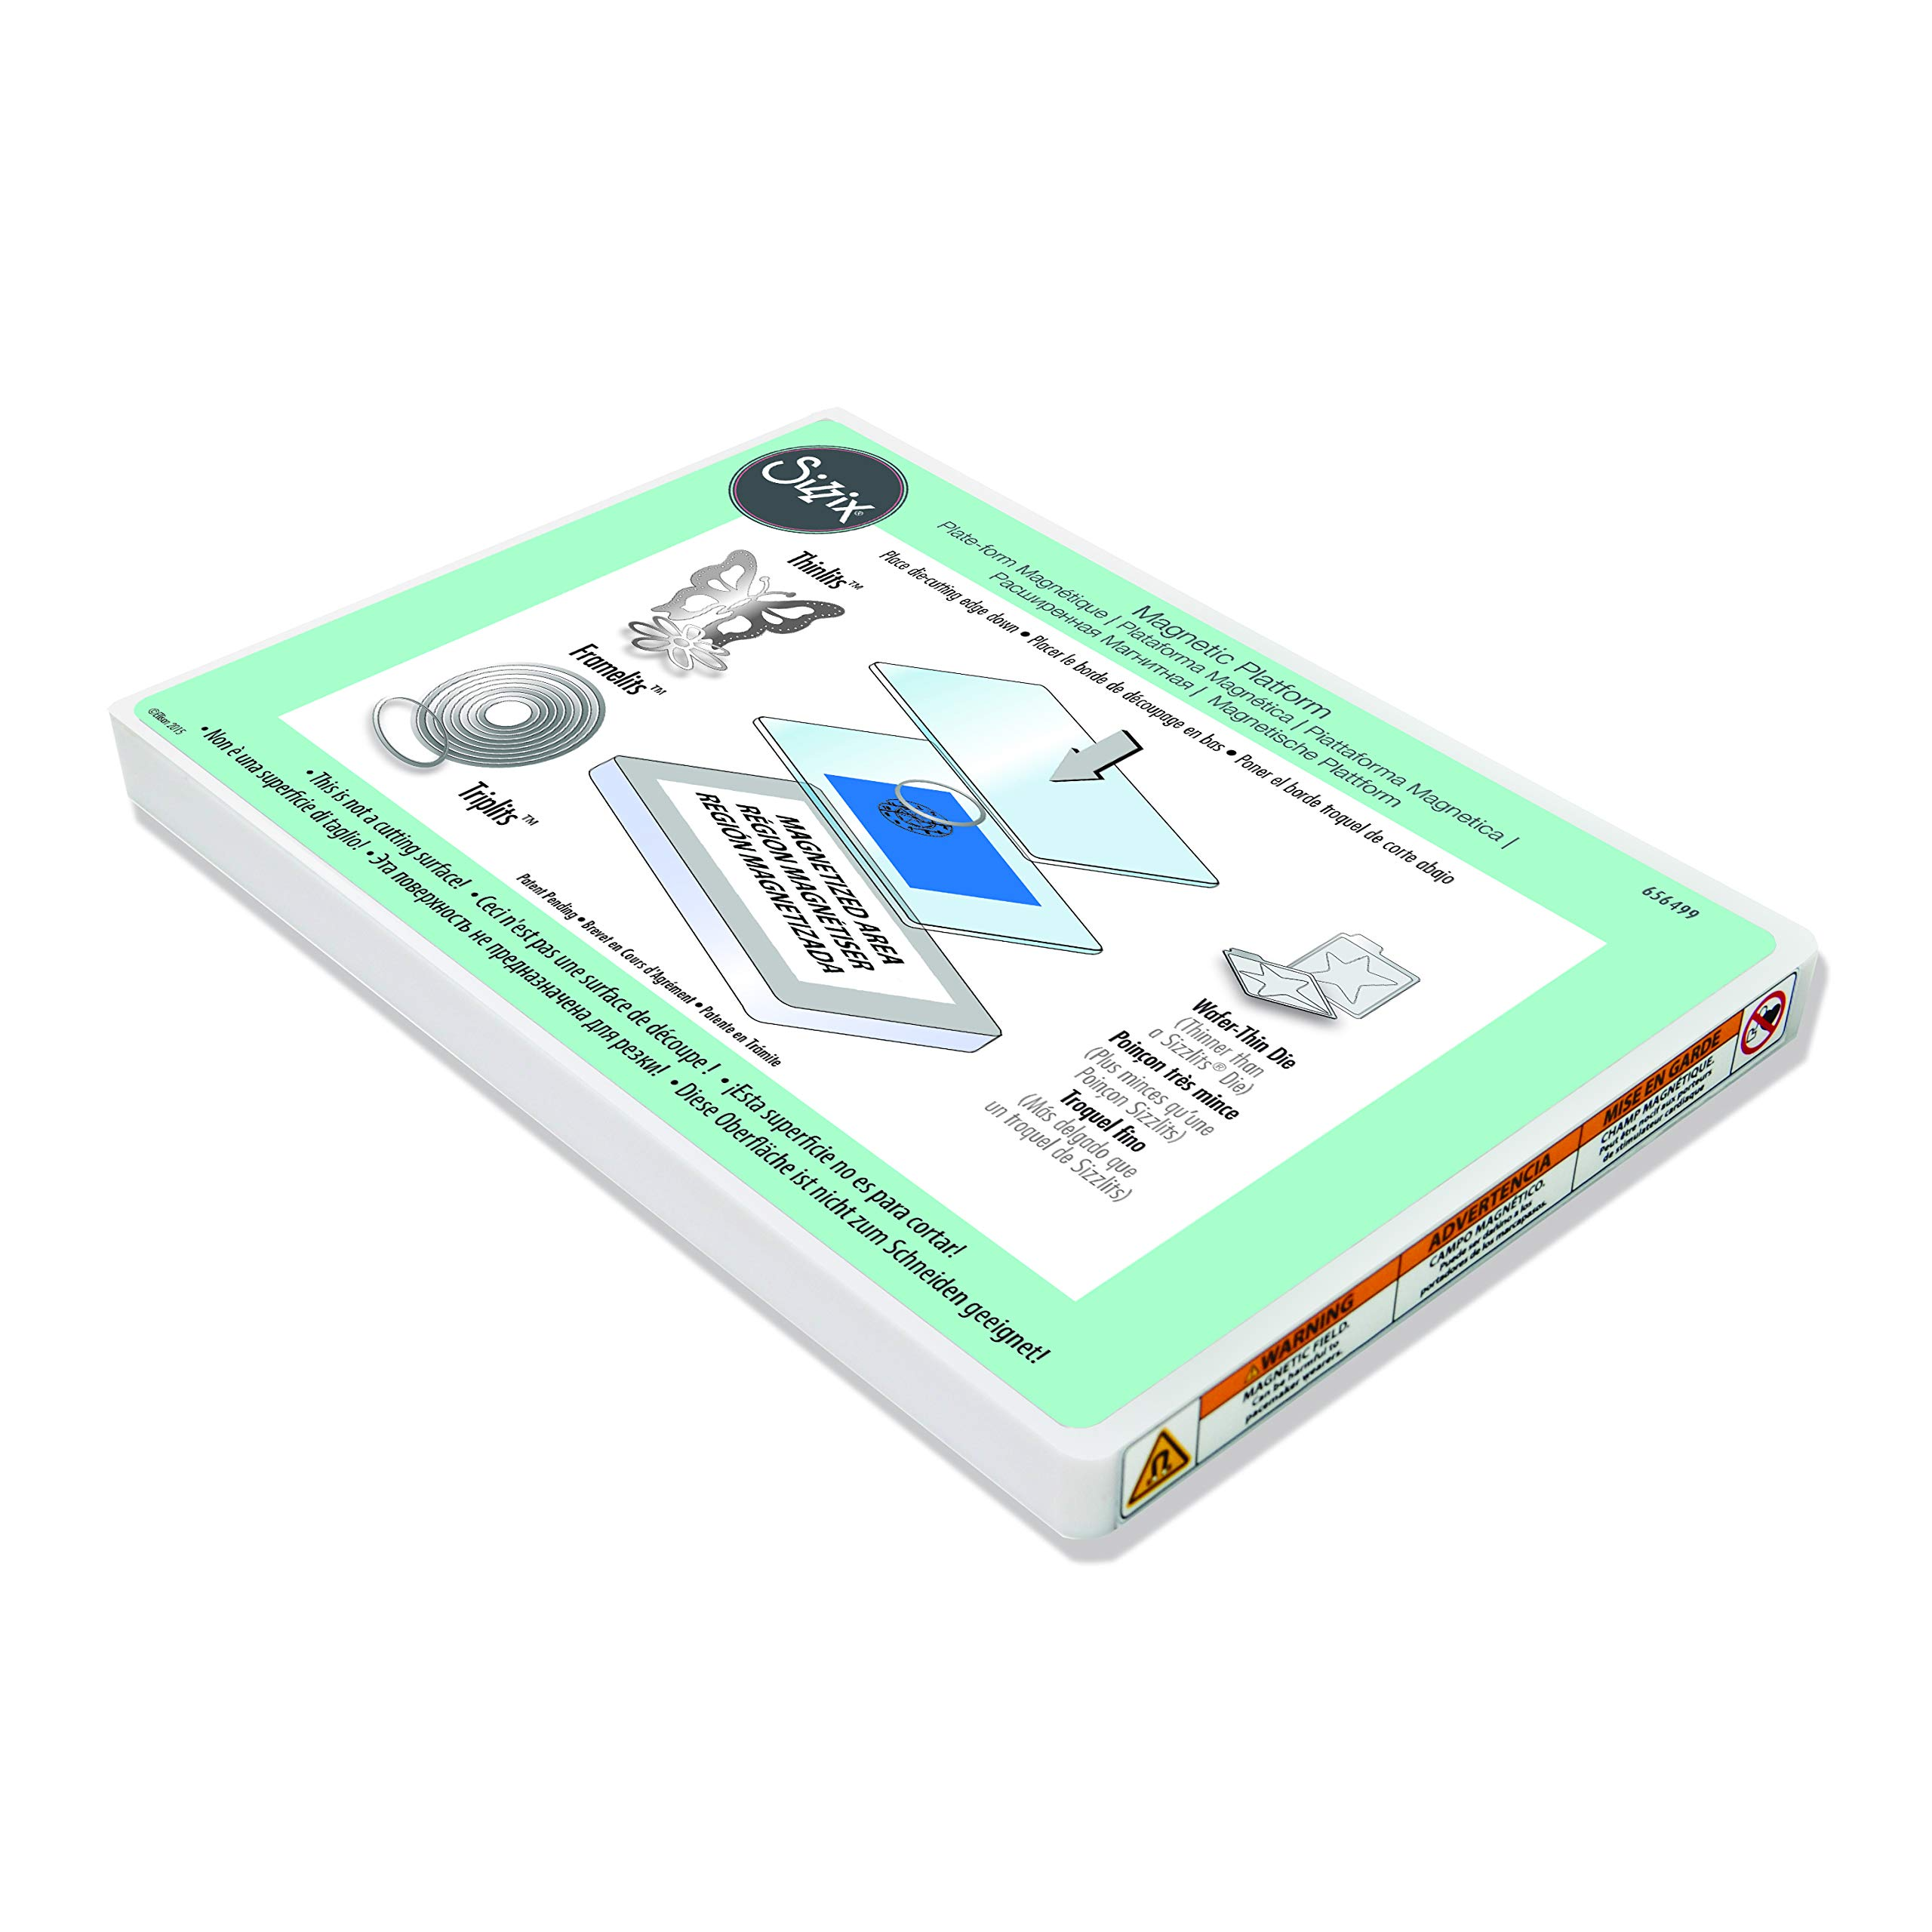 Sizzix, Multi Color, Magnetic Platform for Wafer-Thin Dies 656499, One Size